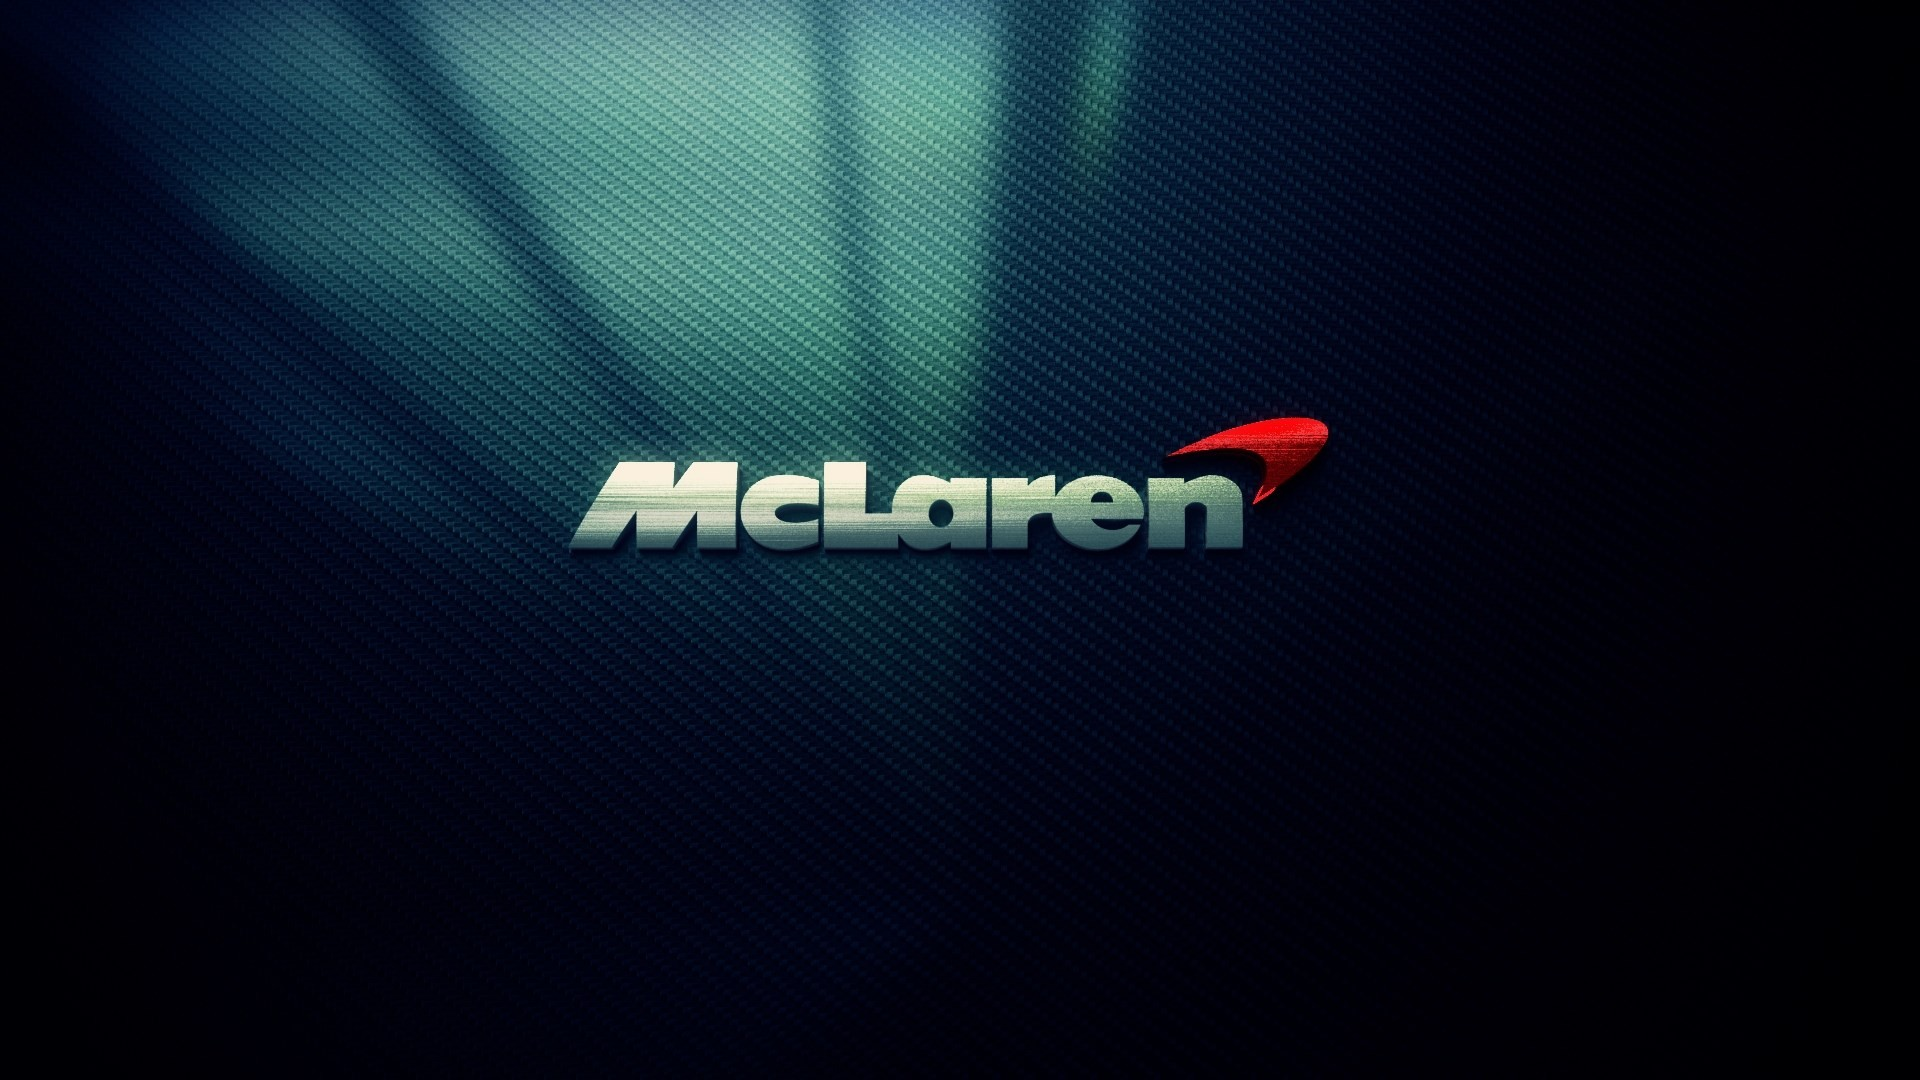 mclaren logo wallpapers 1080p high quality – mclaren logo category